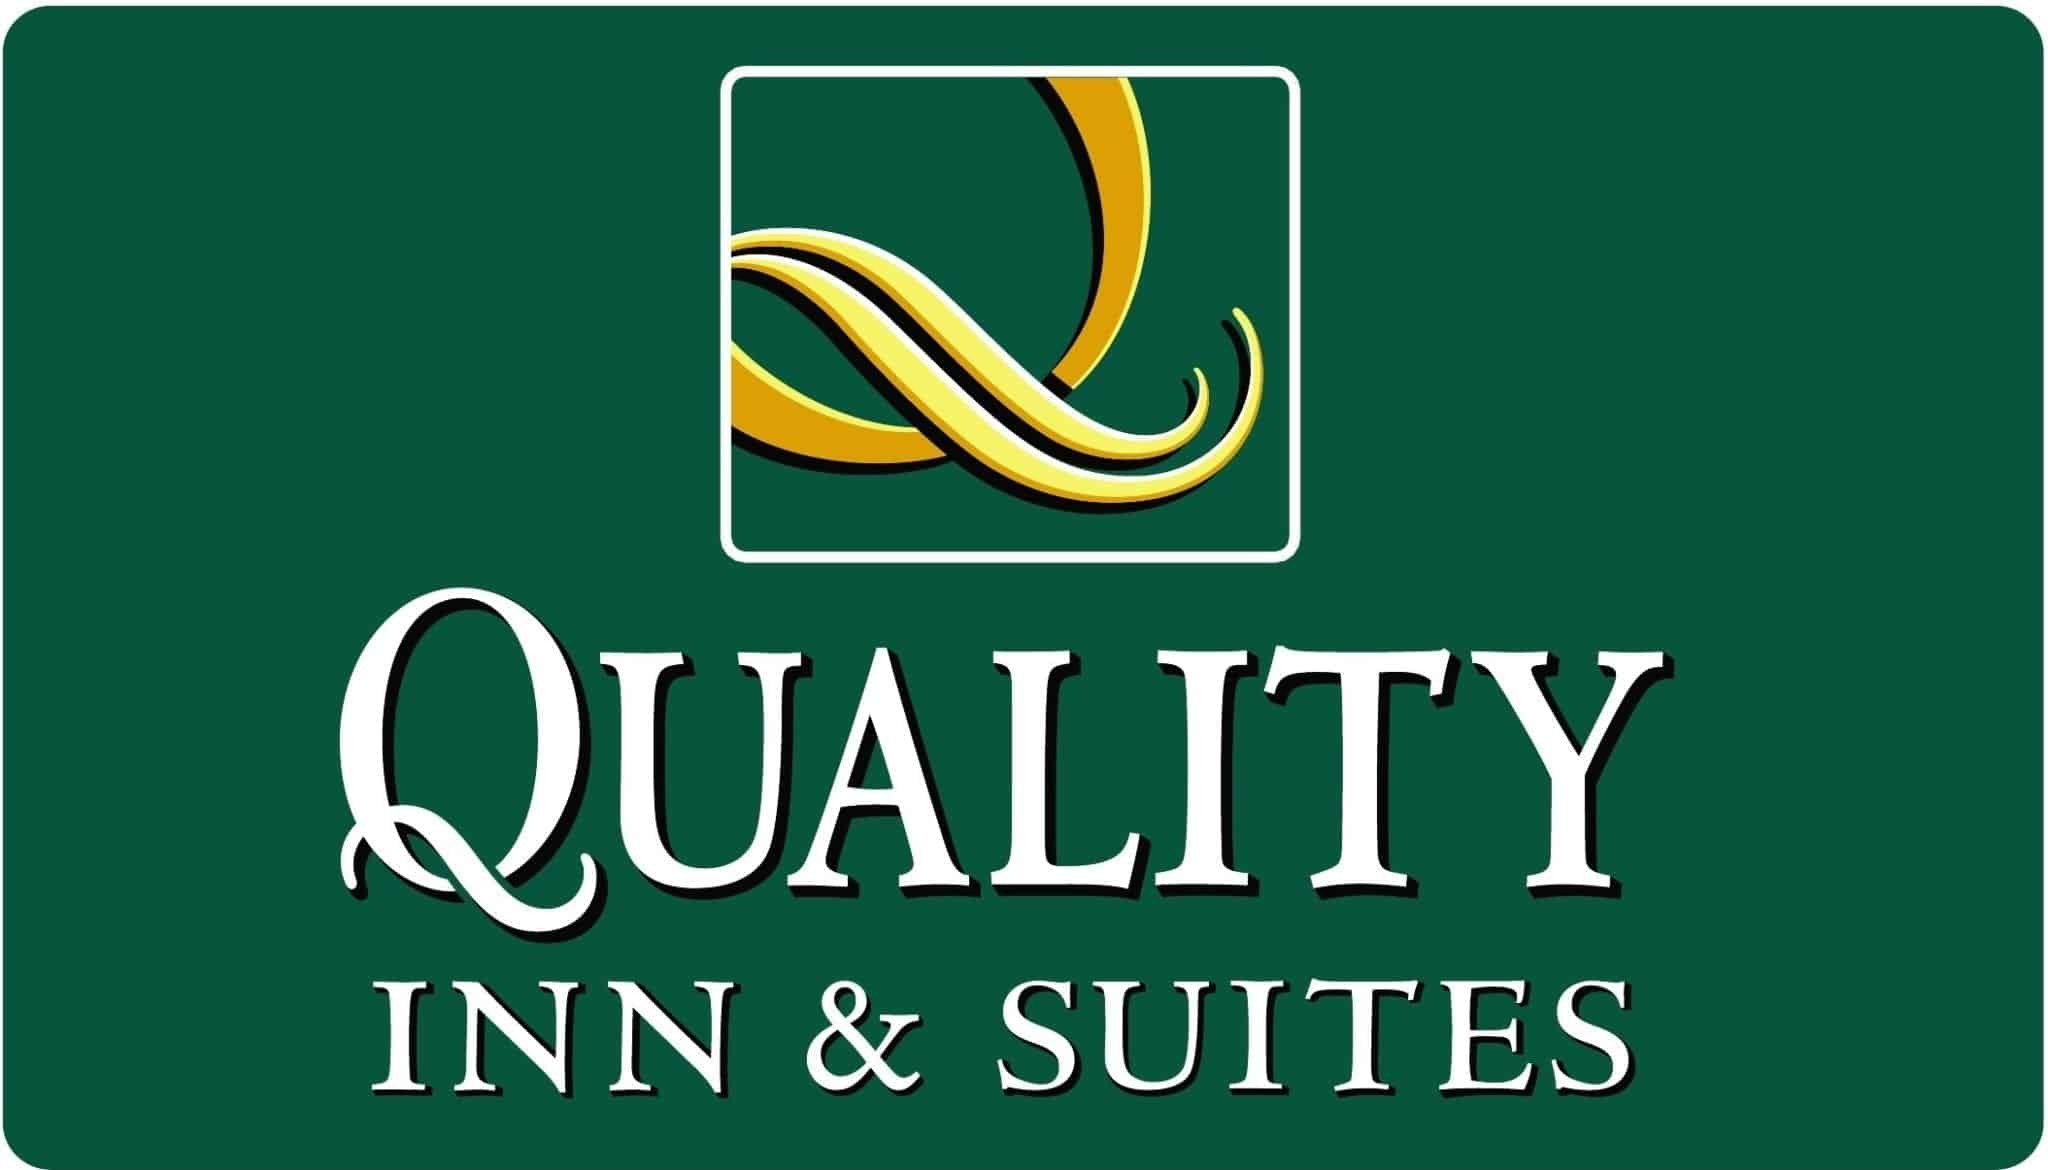 Quality Inn in Ridgeland, SC